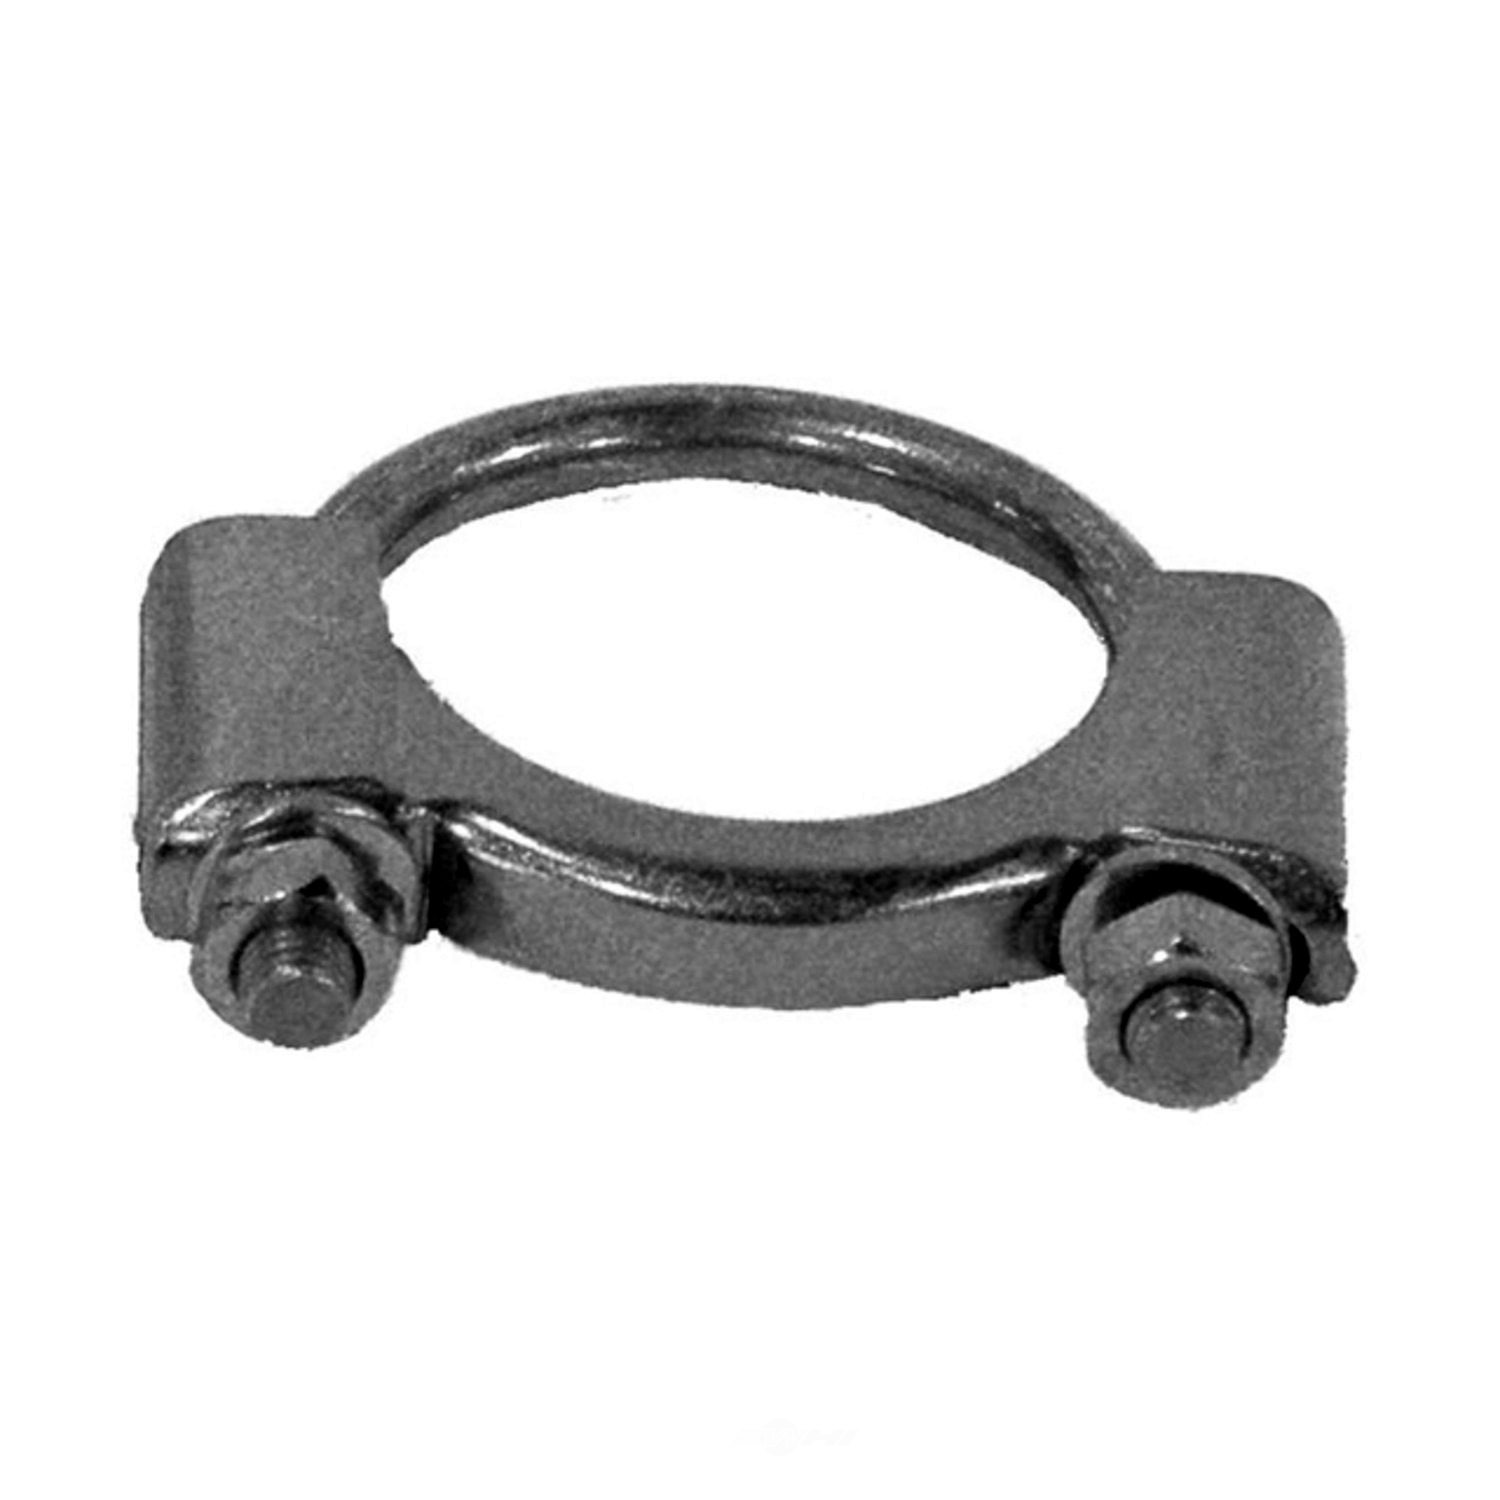 ANSA/SILVERLINE PRODUCTS - Exhaust Clamp - ANE HW4251